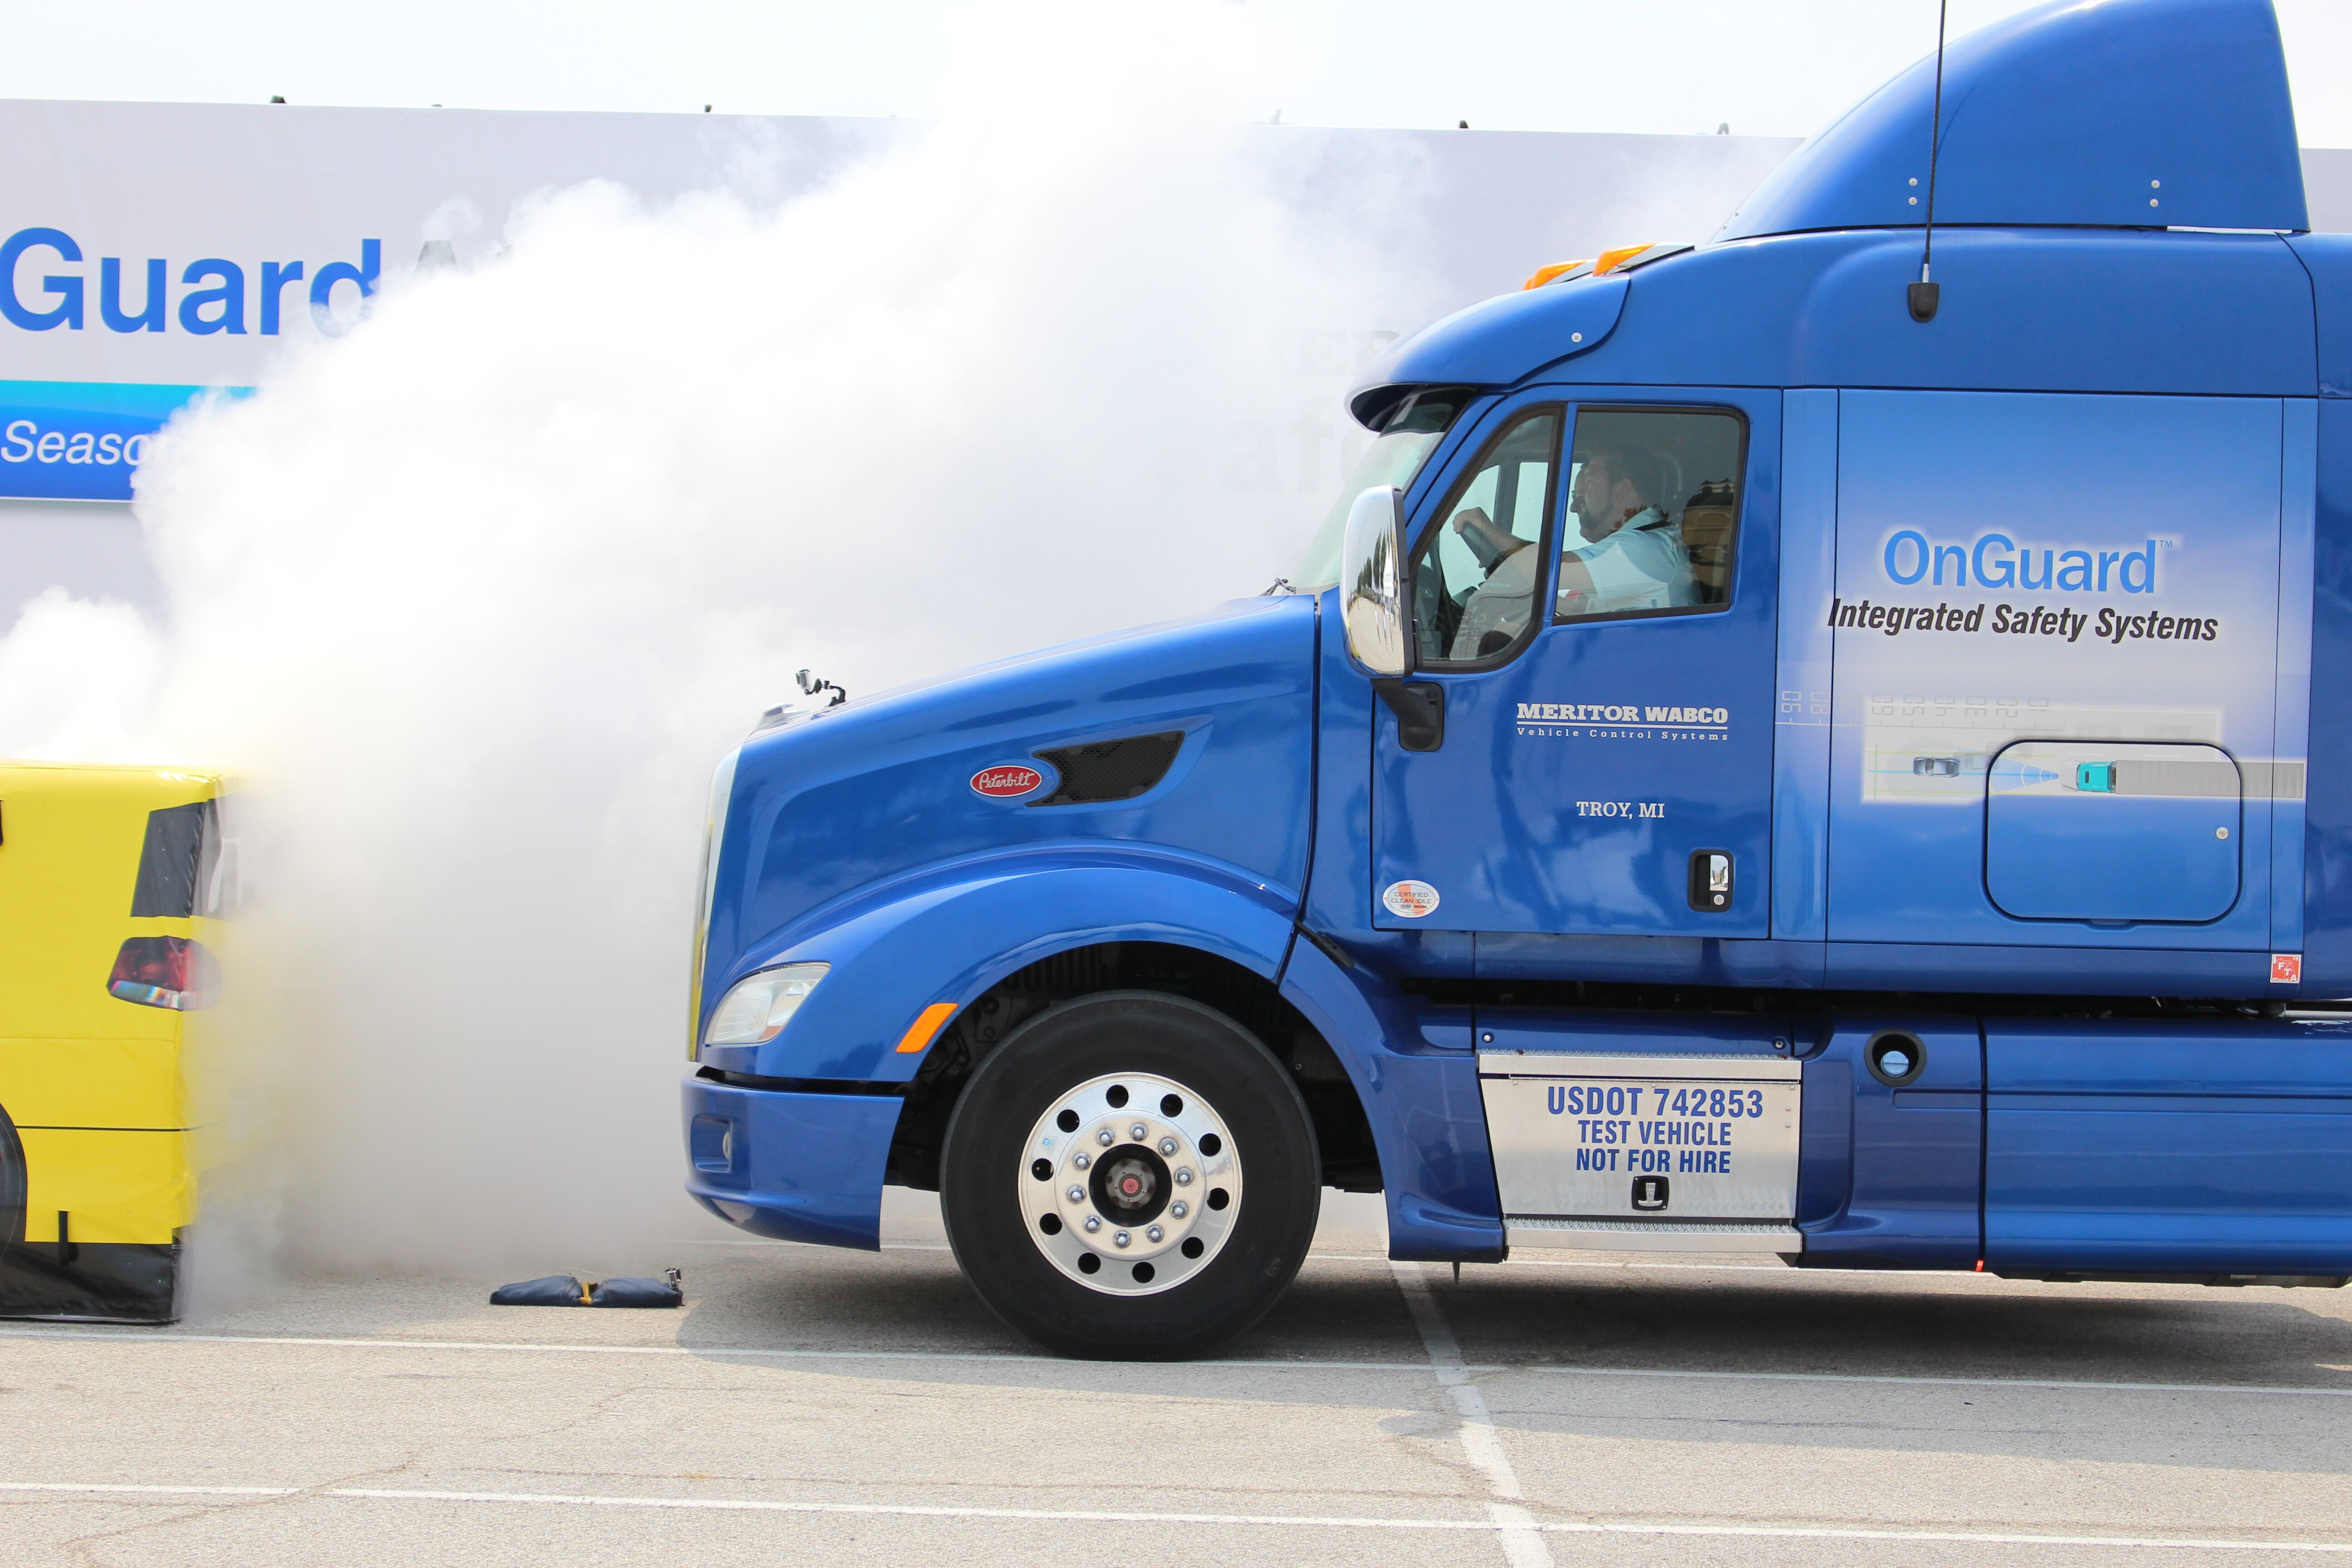 truck stops using automatic system in fog